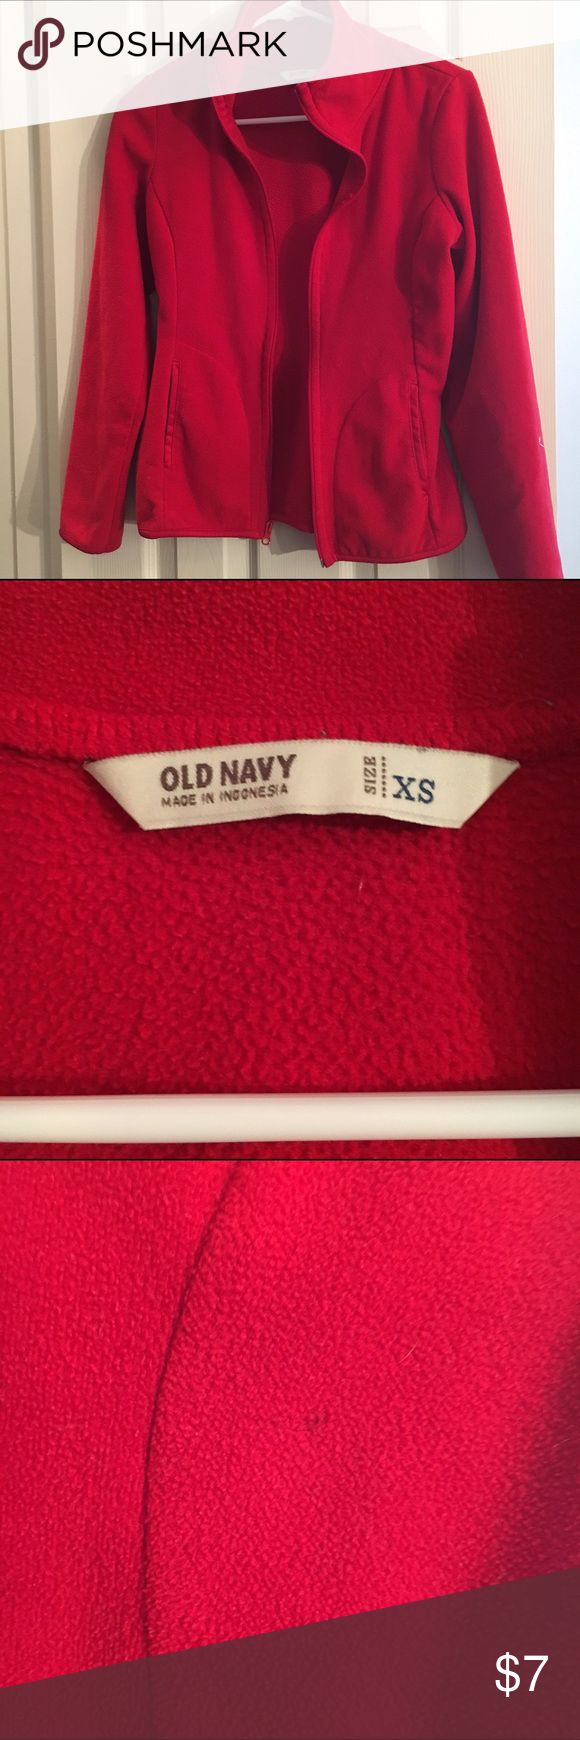 Red, Old Navy Fleece Jacket Red, old navy fleece jacket. Two pockets and zips up the front. Good used condition. Small spot as pictured, but not too noticeable. Size XS. Old Navy Jackets & Coats